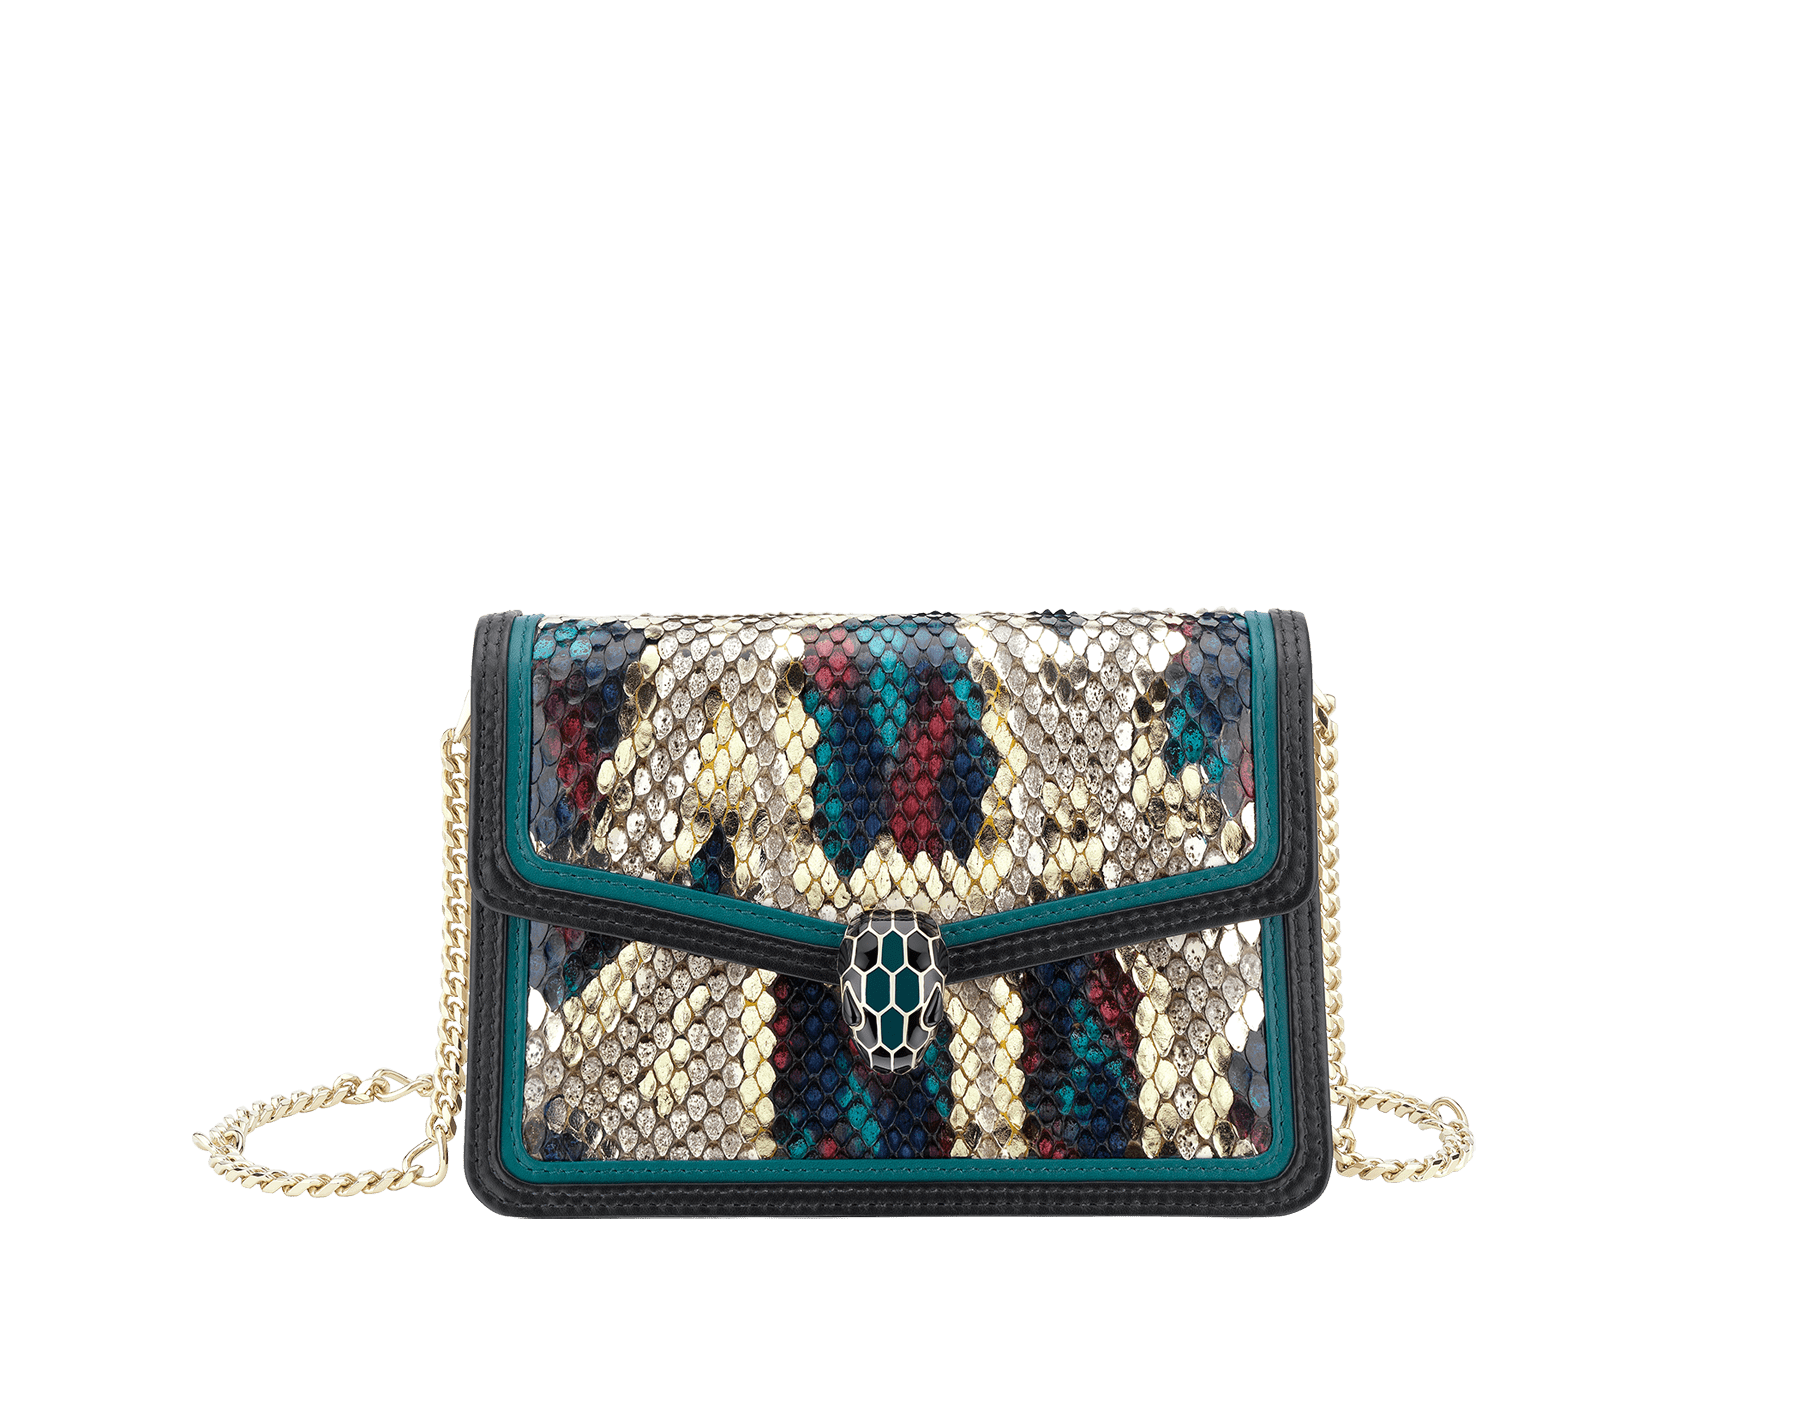 """Serpenti Diamond Blast"" crossbody micro bag in white agate Lunar python skin body and deep jade and black calf leather frames. Iconic snakehead closure in light gold plated brass enriched with deep jade and black enamel and black onyx eyes. 288266 image 1"